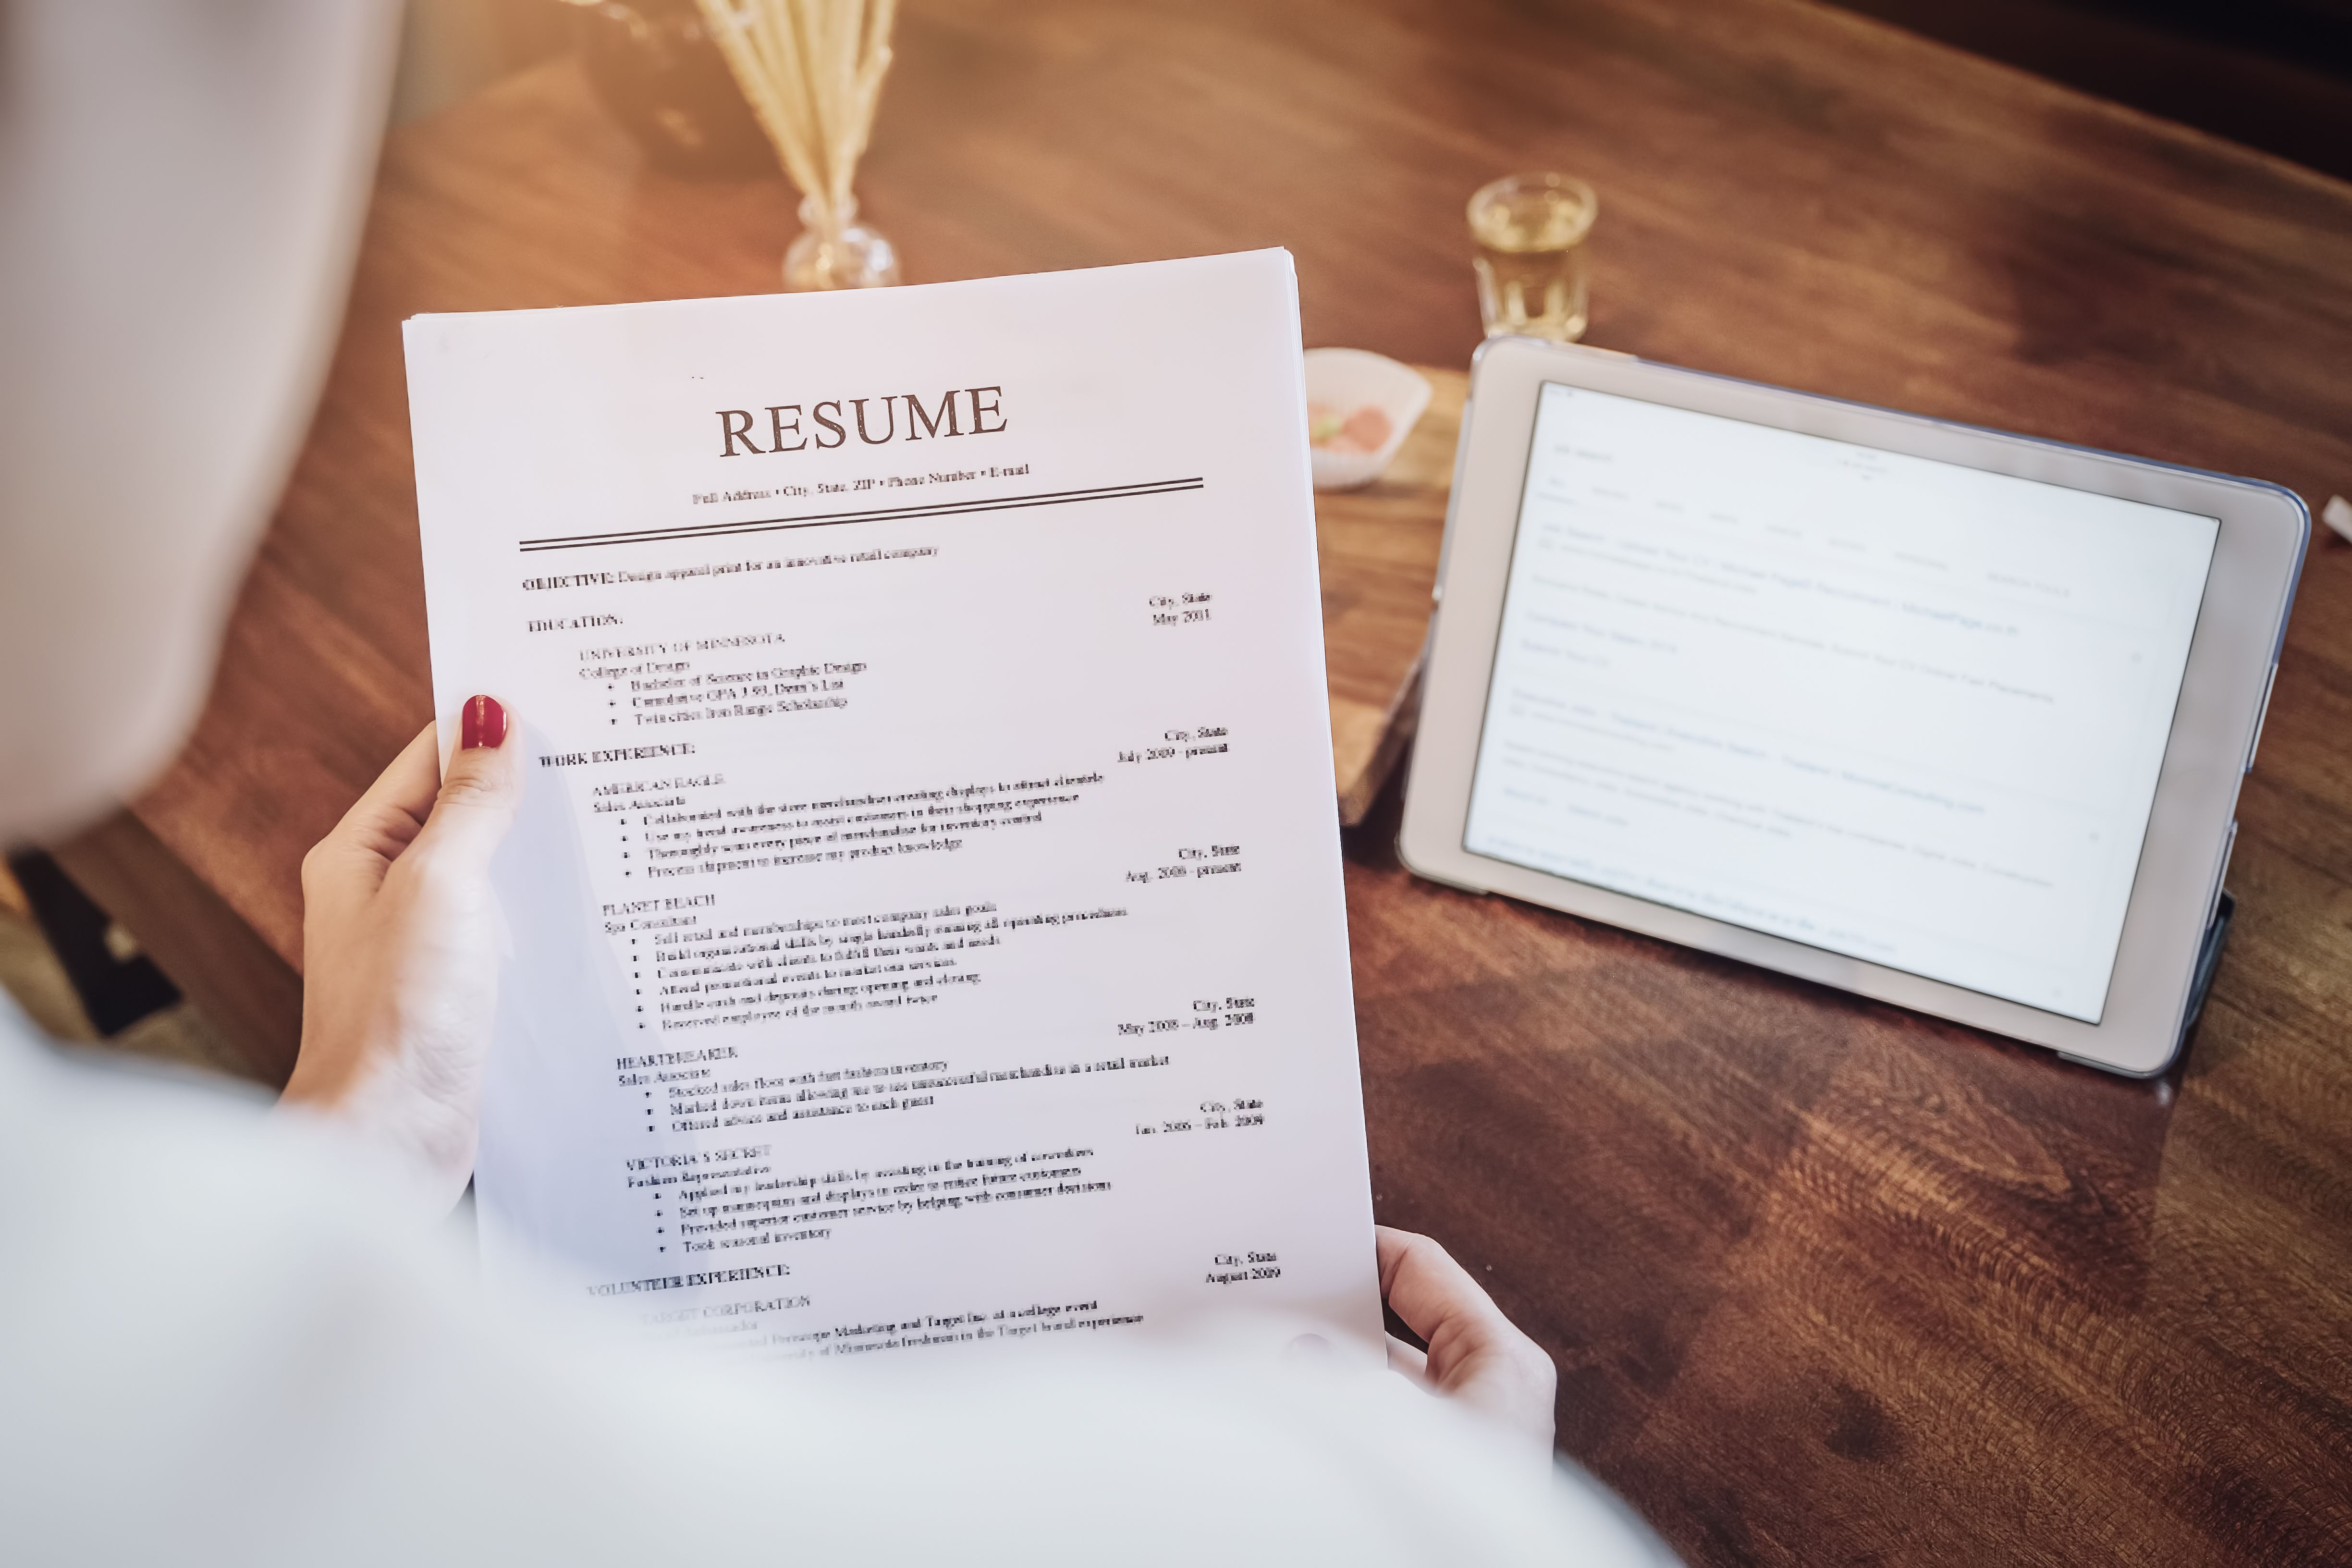 Person holding resume while searching for jobs online